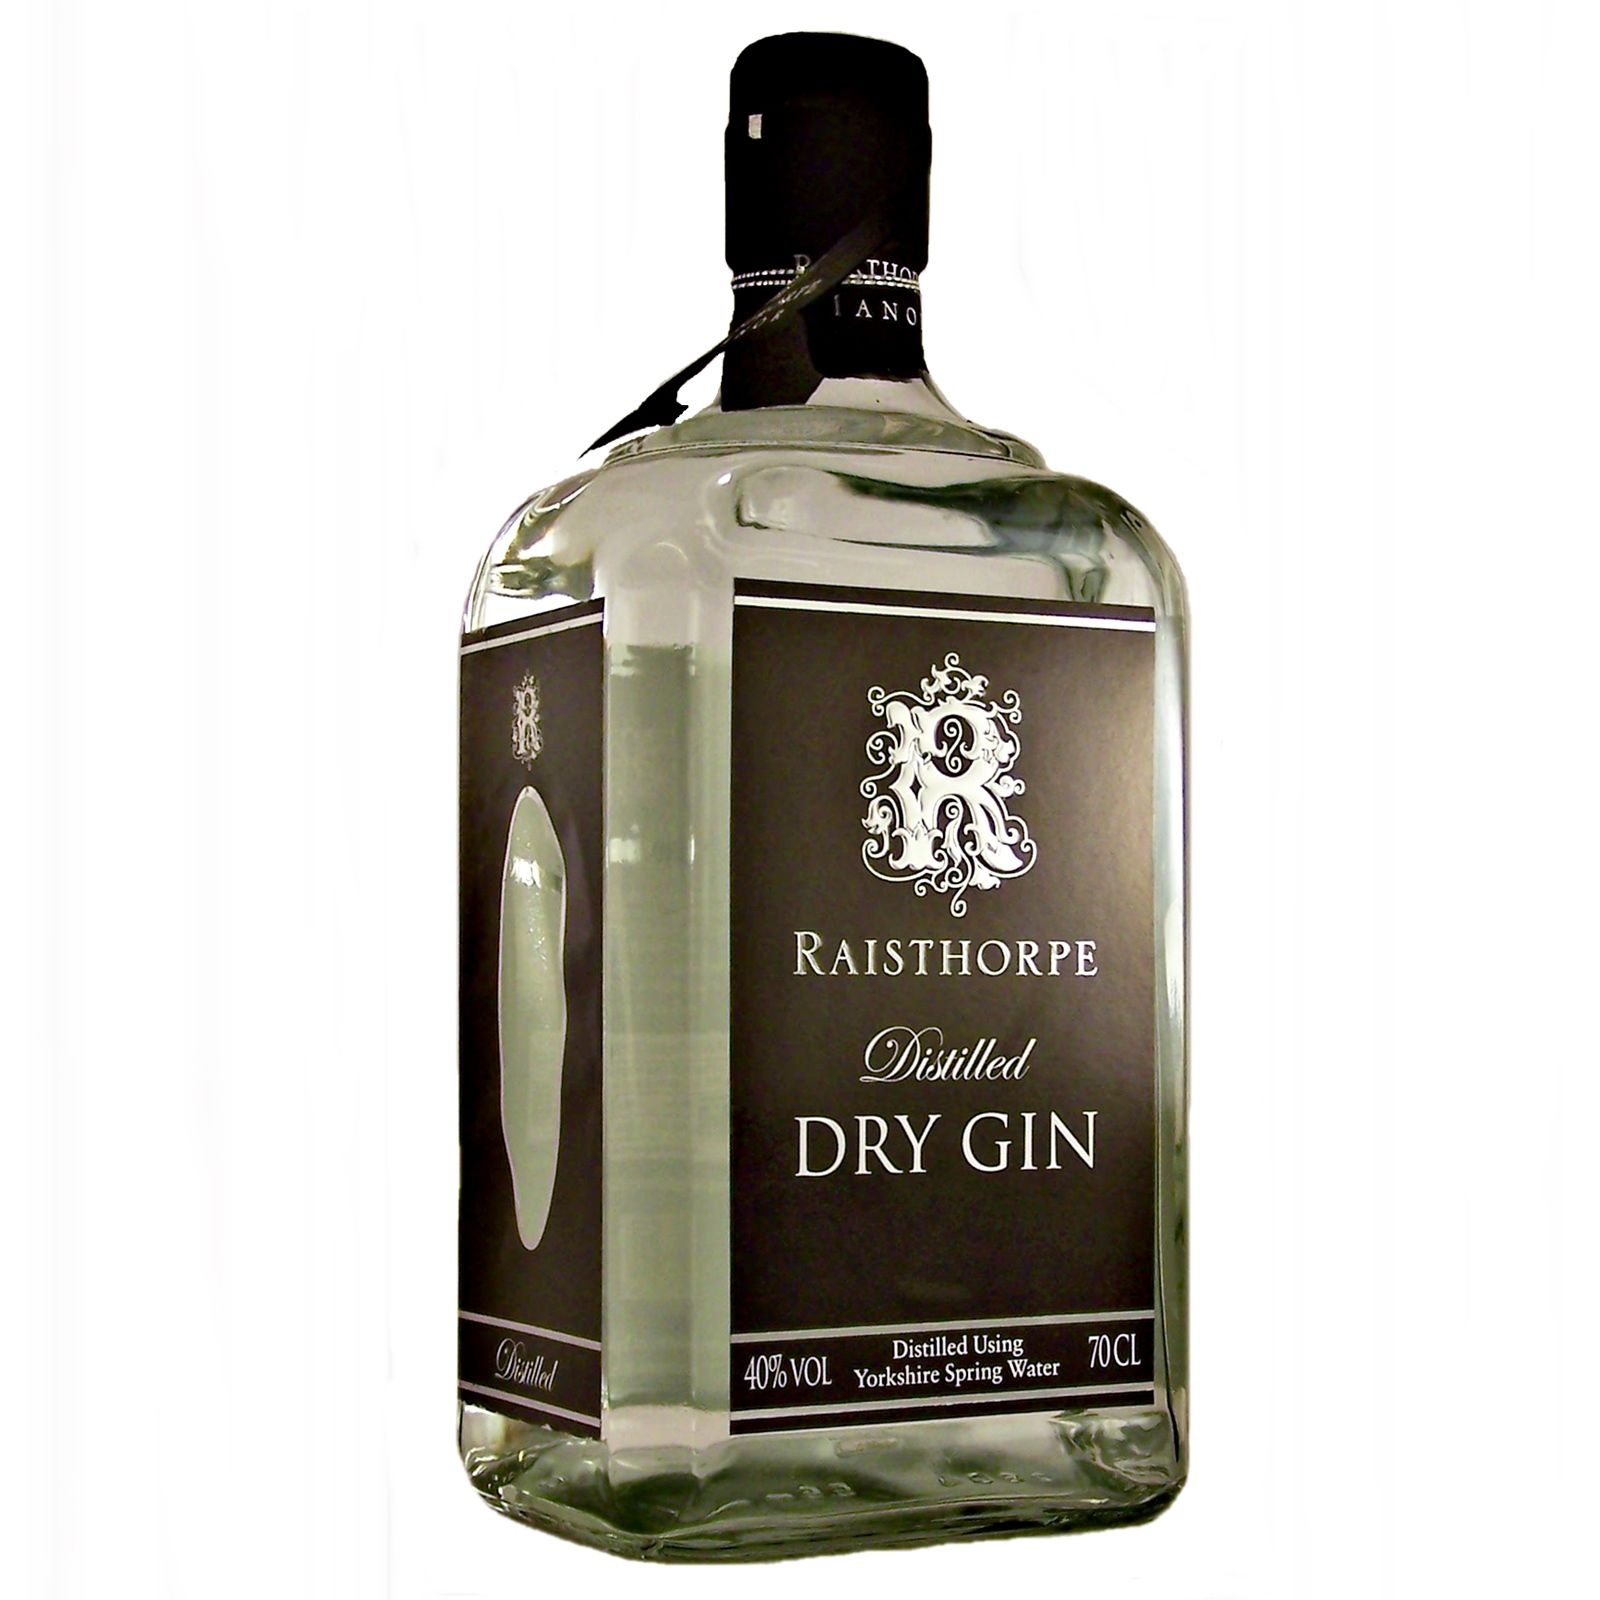 Raisthorpe Dry Gin distilled using Yorkshire Wold spring water available to buy online at specialist whisky shop whiskys.co.uk Stamford Bridge York